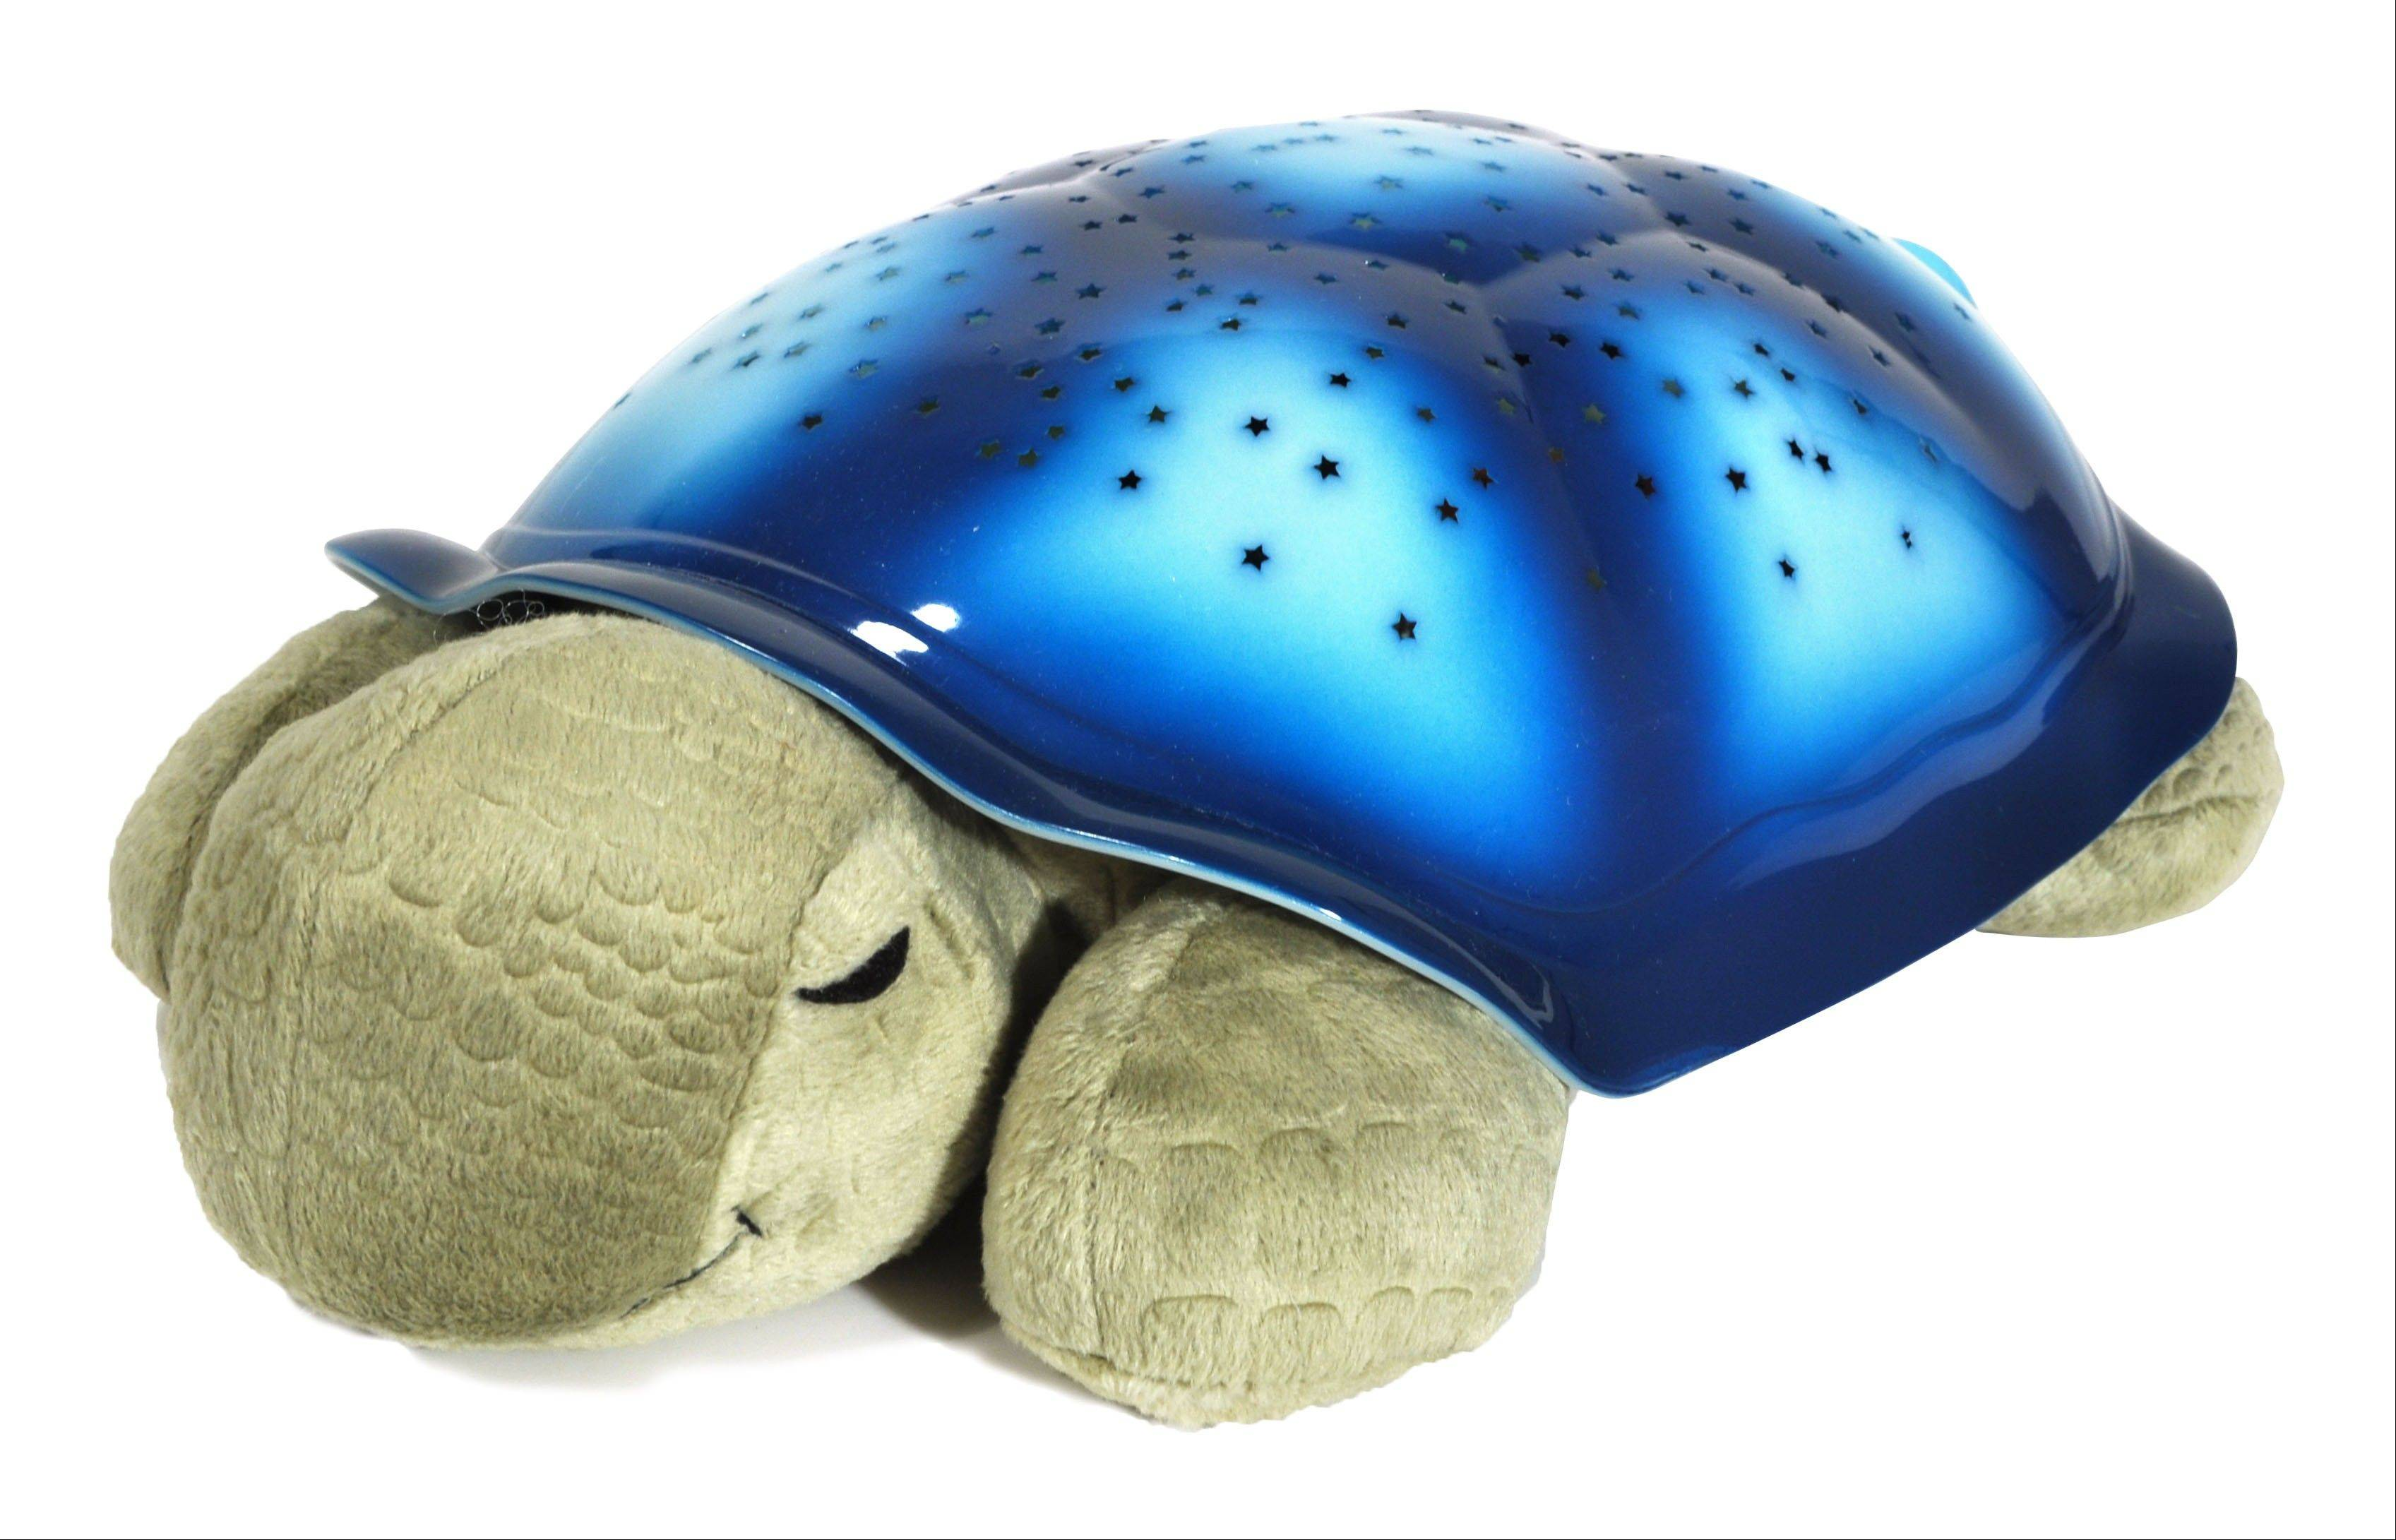 Twilight Turtle pillow lights up a bedroom's ceiling with a starry pattern. Parents can download lullabies and stream them through the turtle via Bluetooth technology.